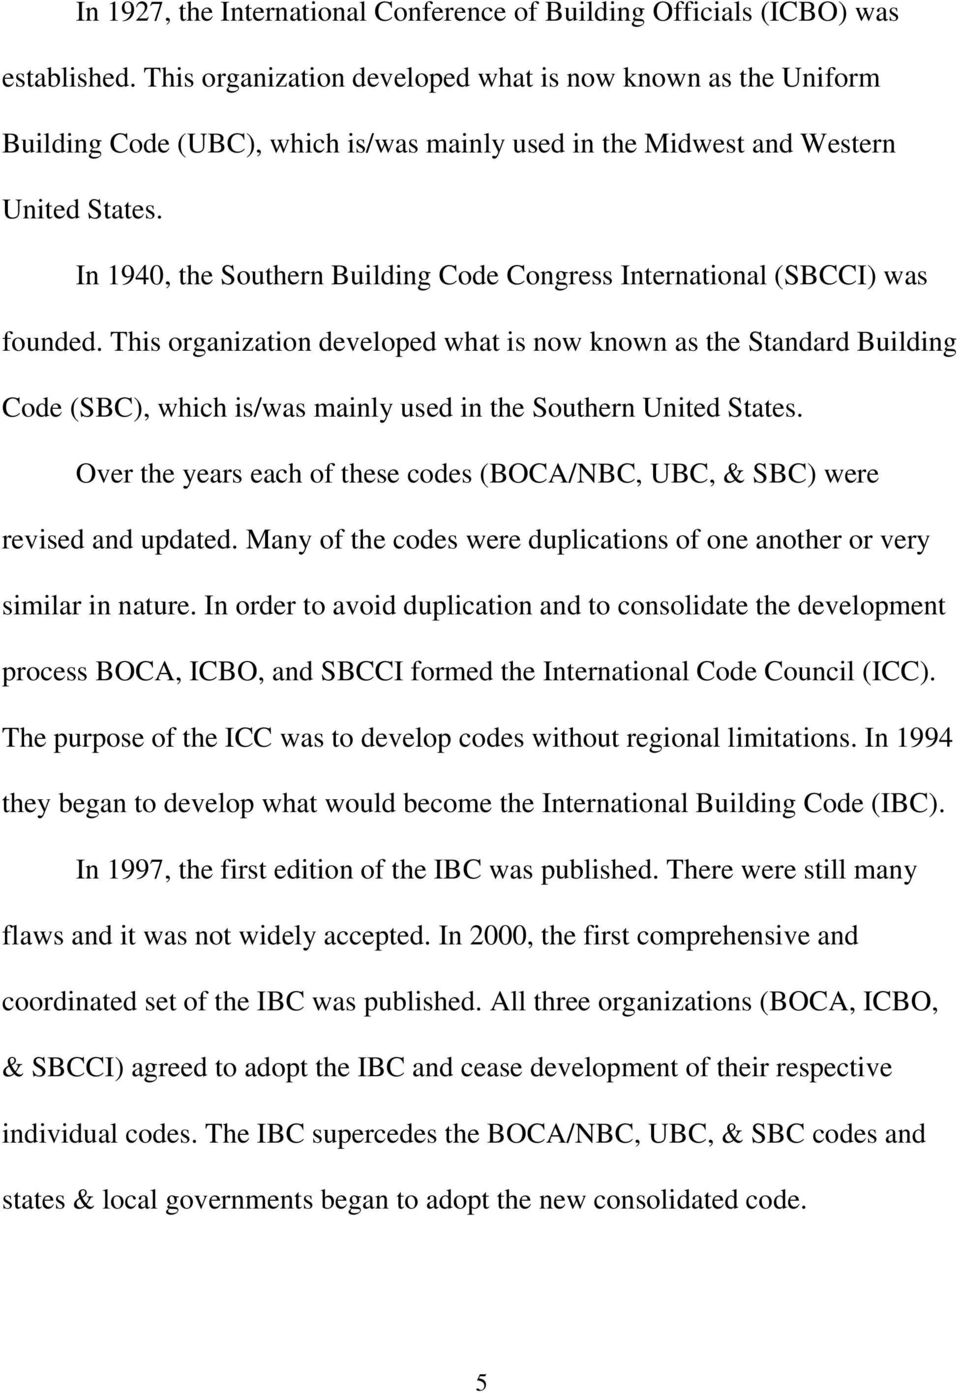 In 1940, the Southern Building Code Congress International (SBCCI) was founded.